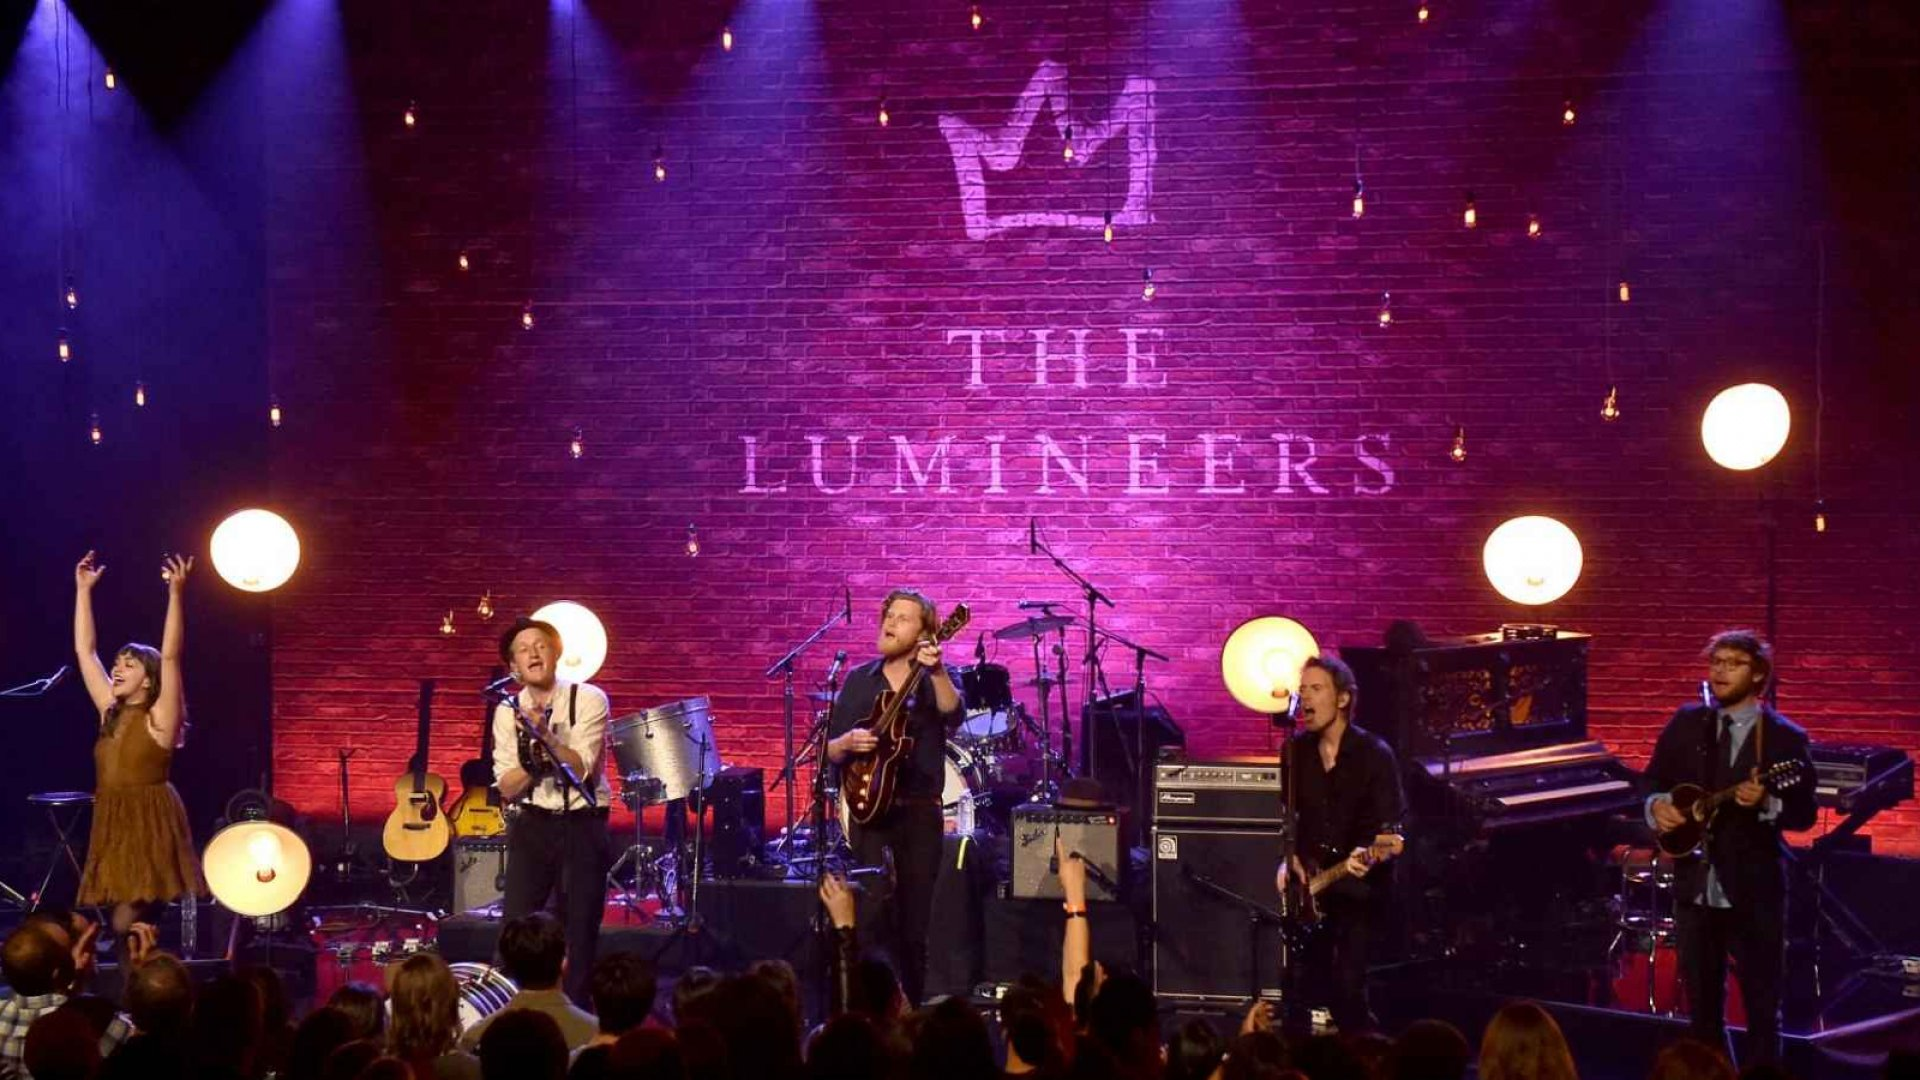 Why 'The Lumineers' Are Such an Instagram-Friendly Band